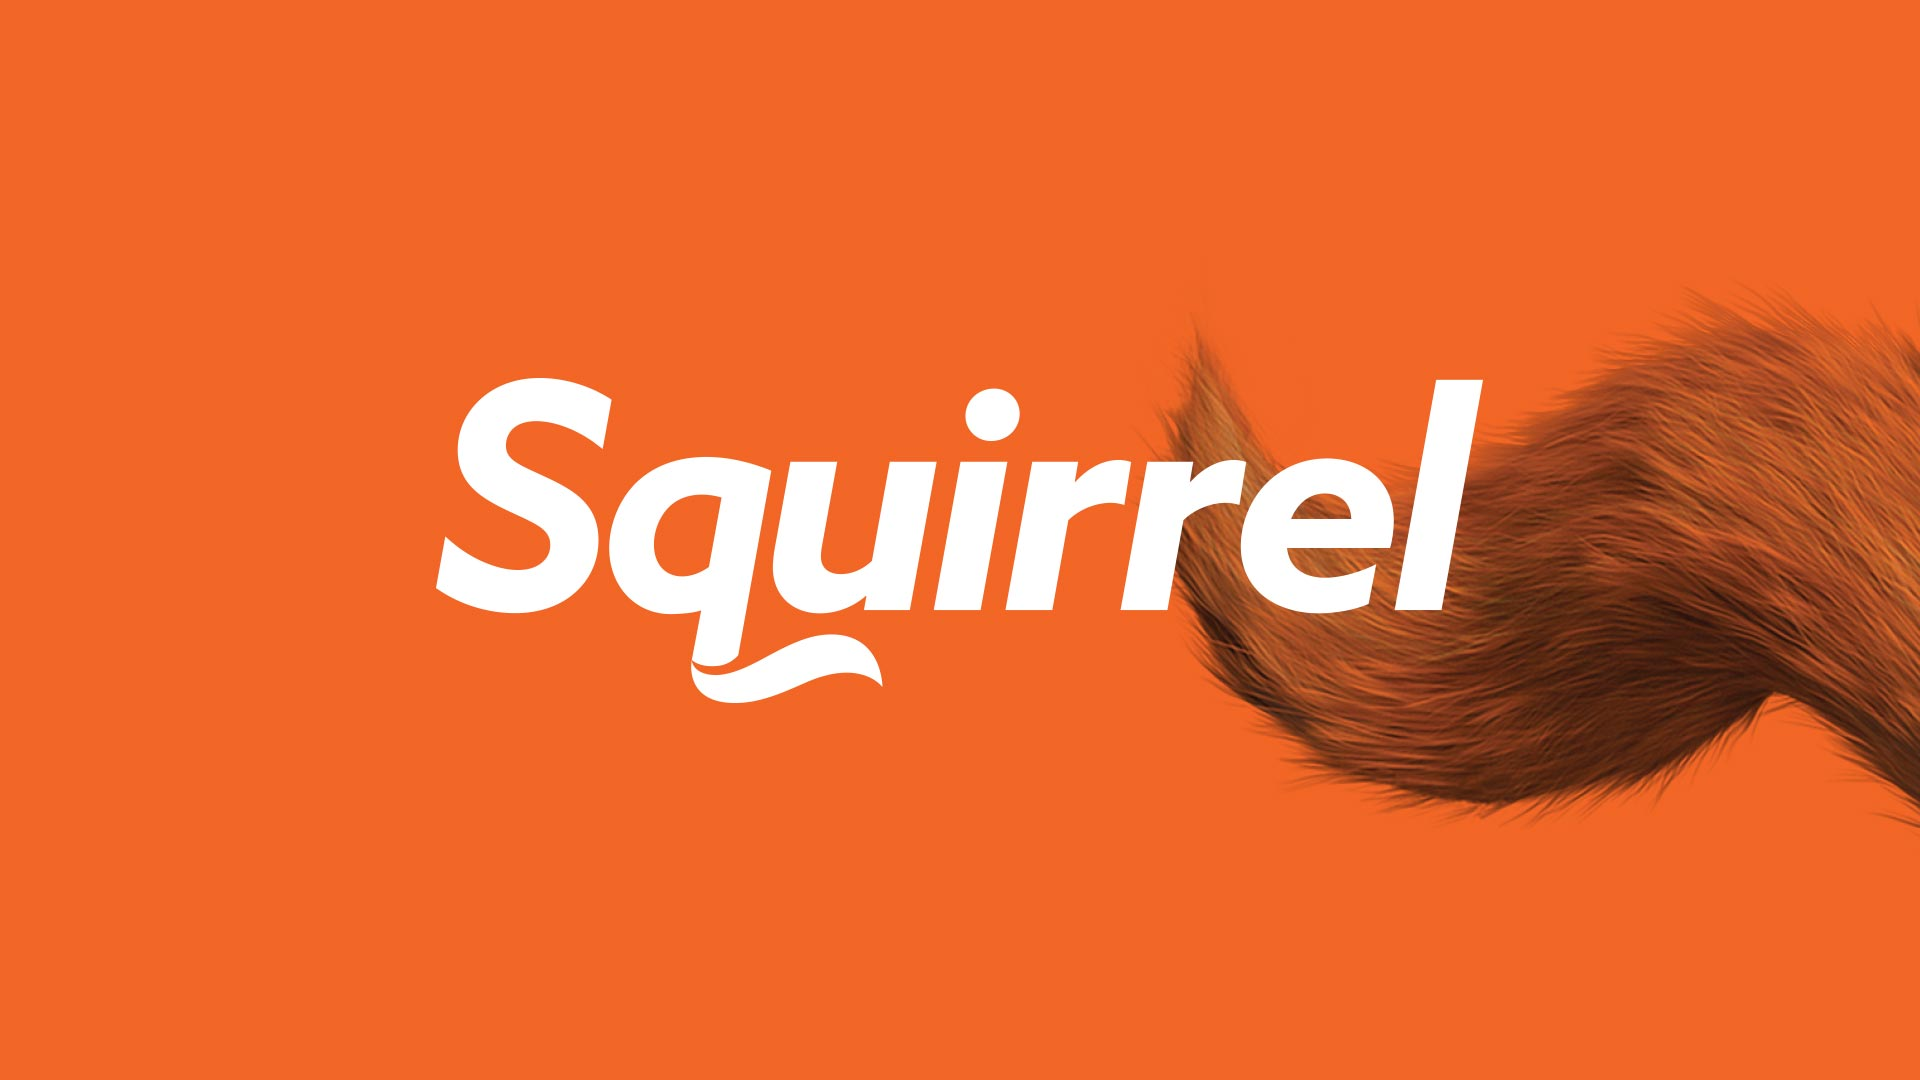 Squirrel hero image